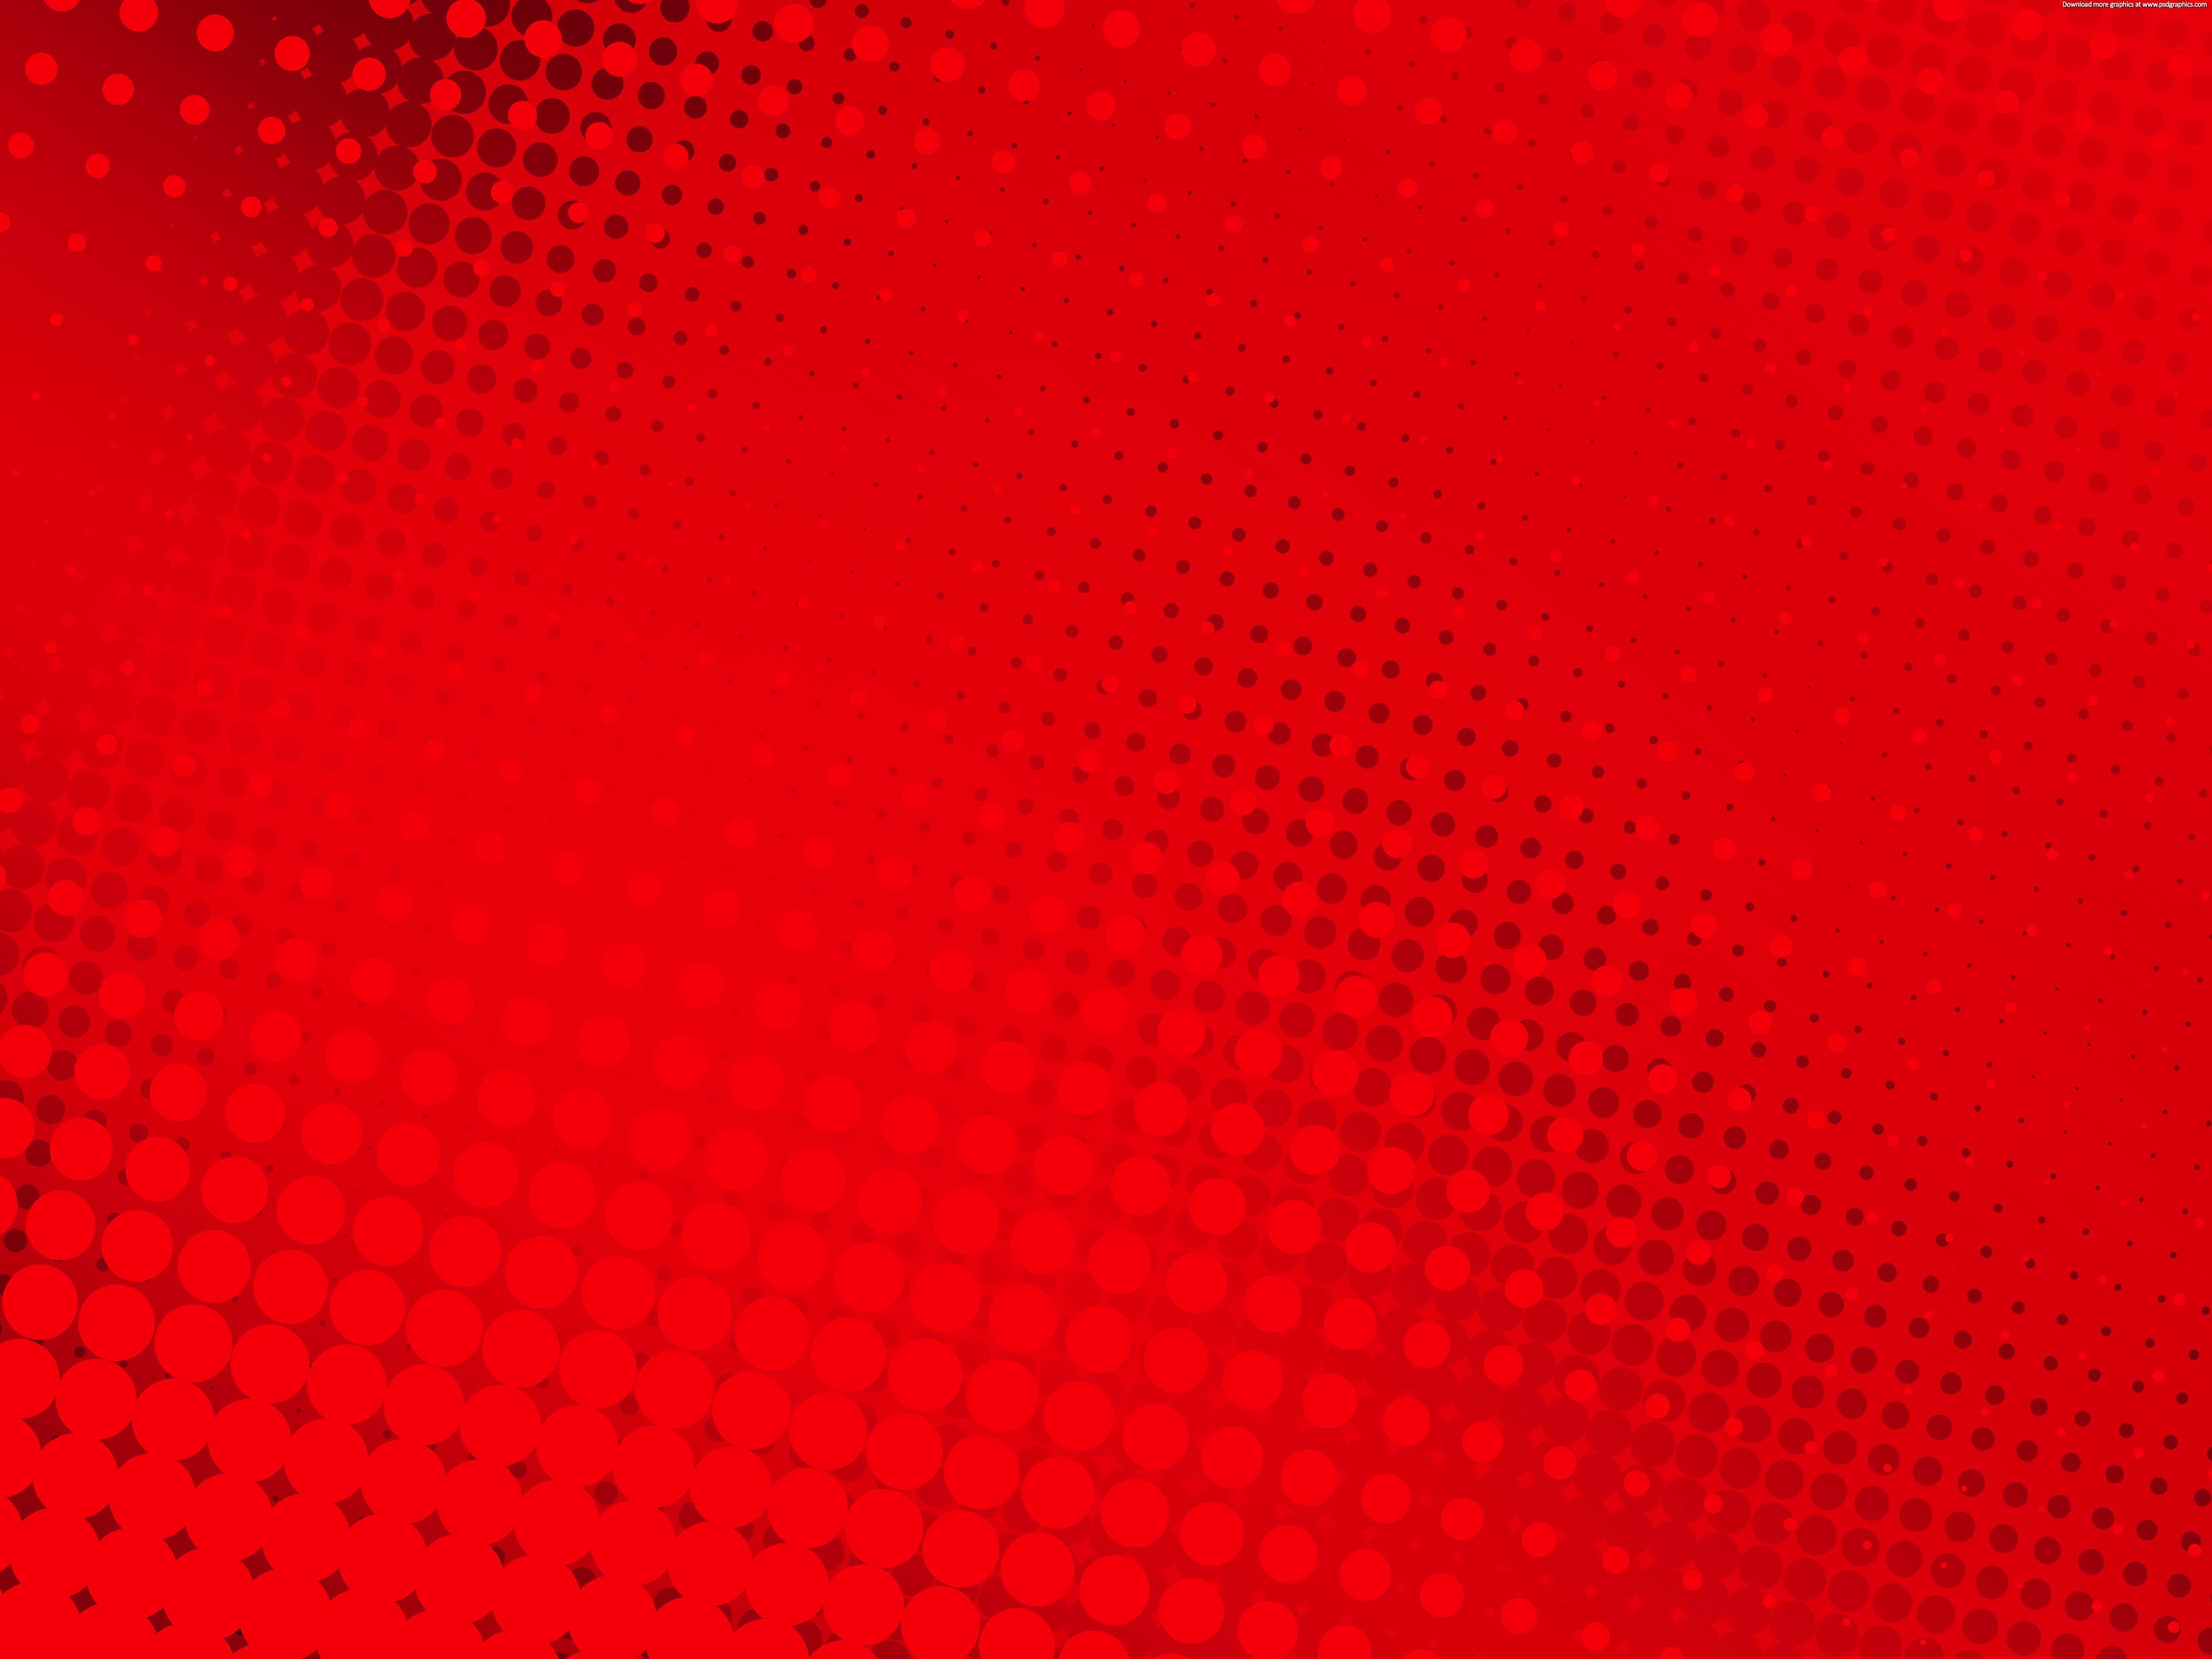 red background - Free Large Images | RED! | Pinterest ...